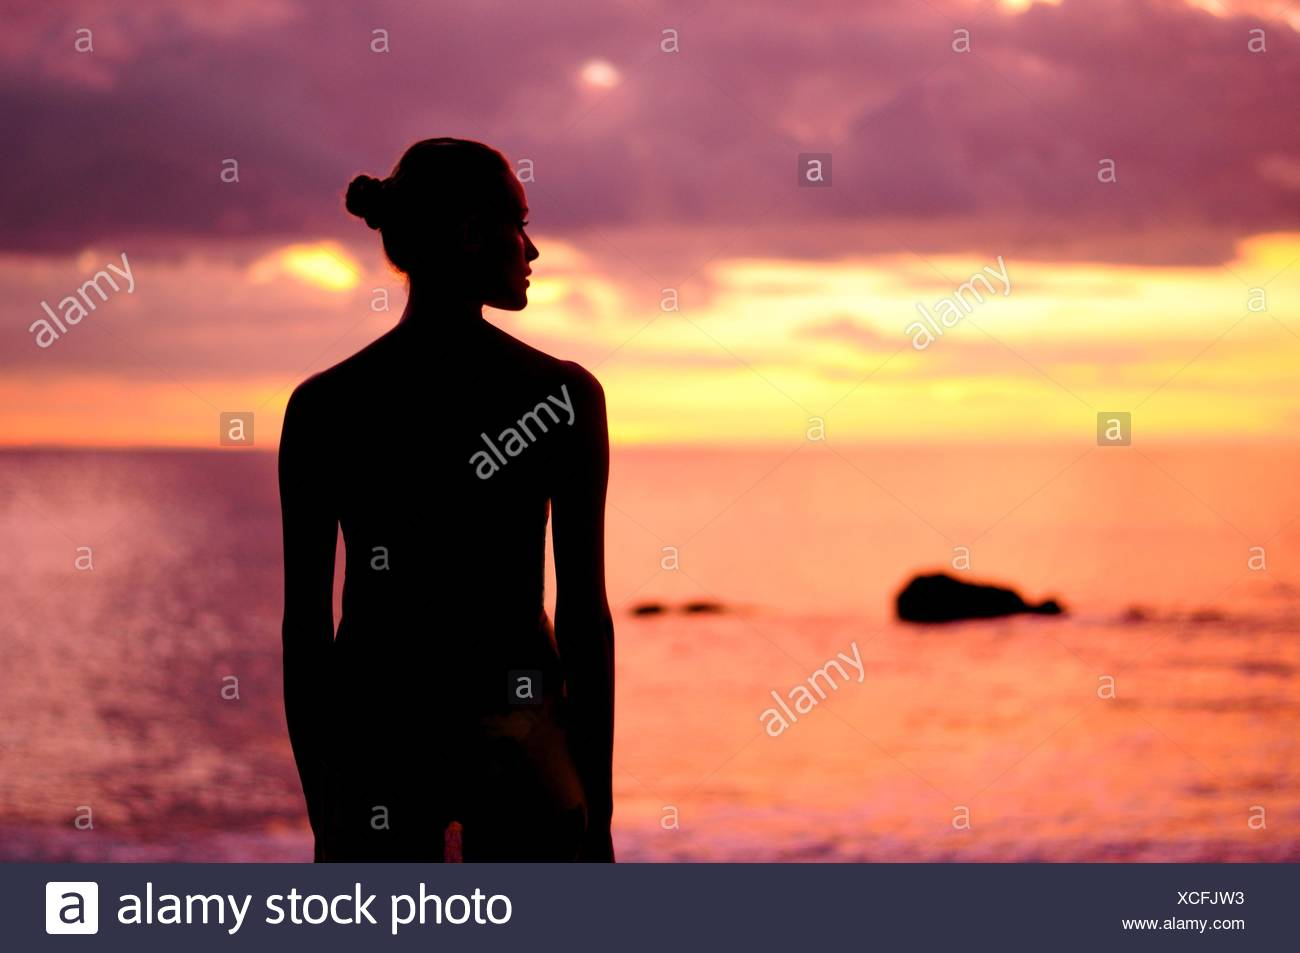 Silhouette of a woman standing at beach - Stock Image